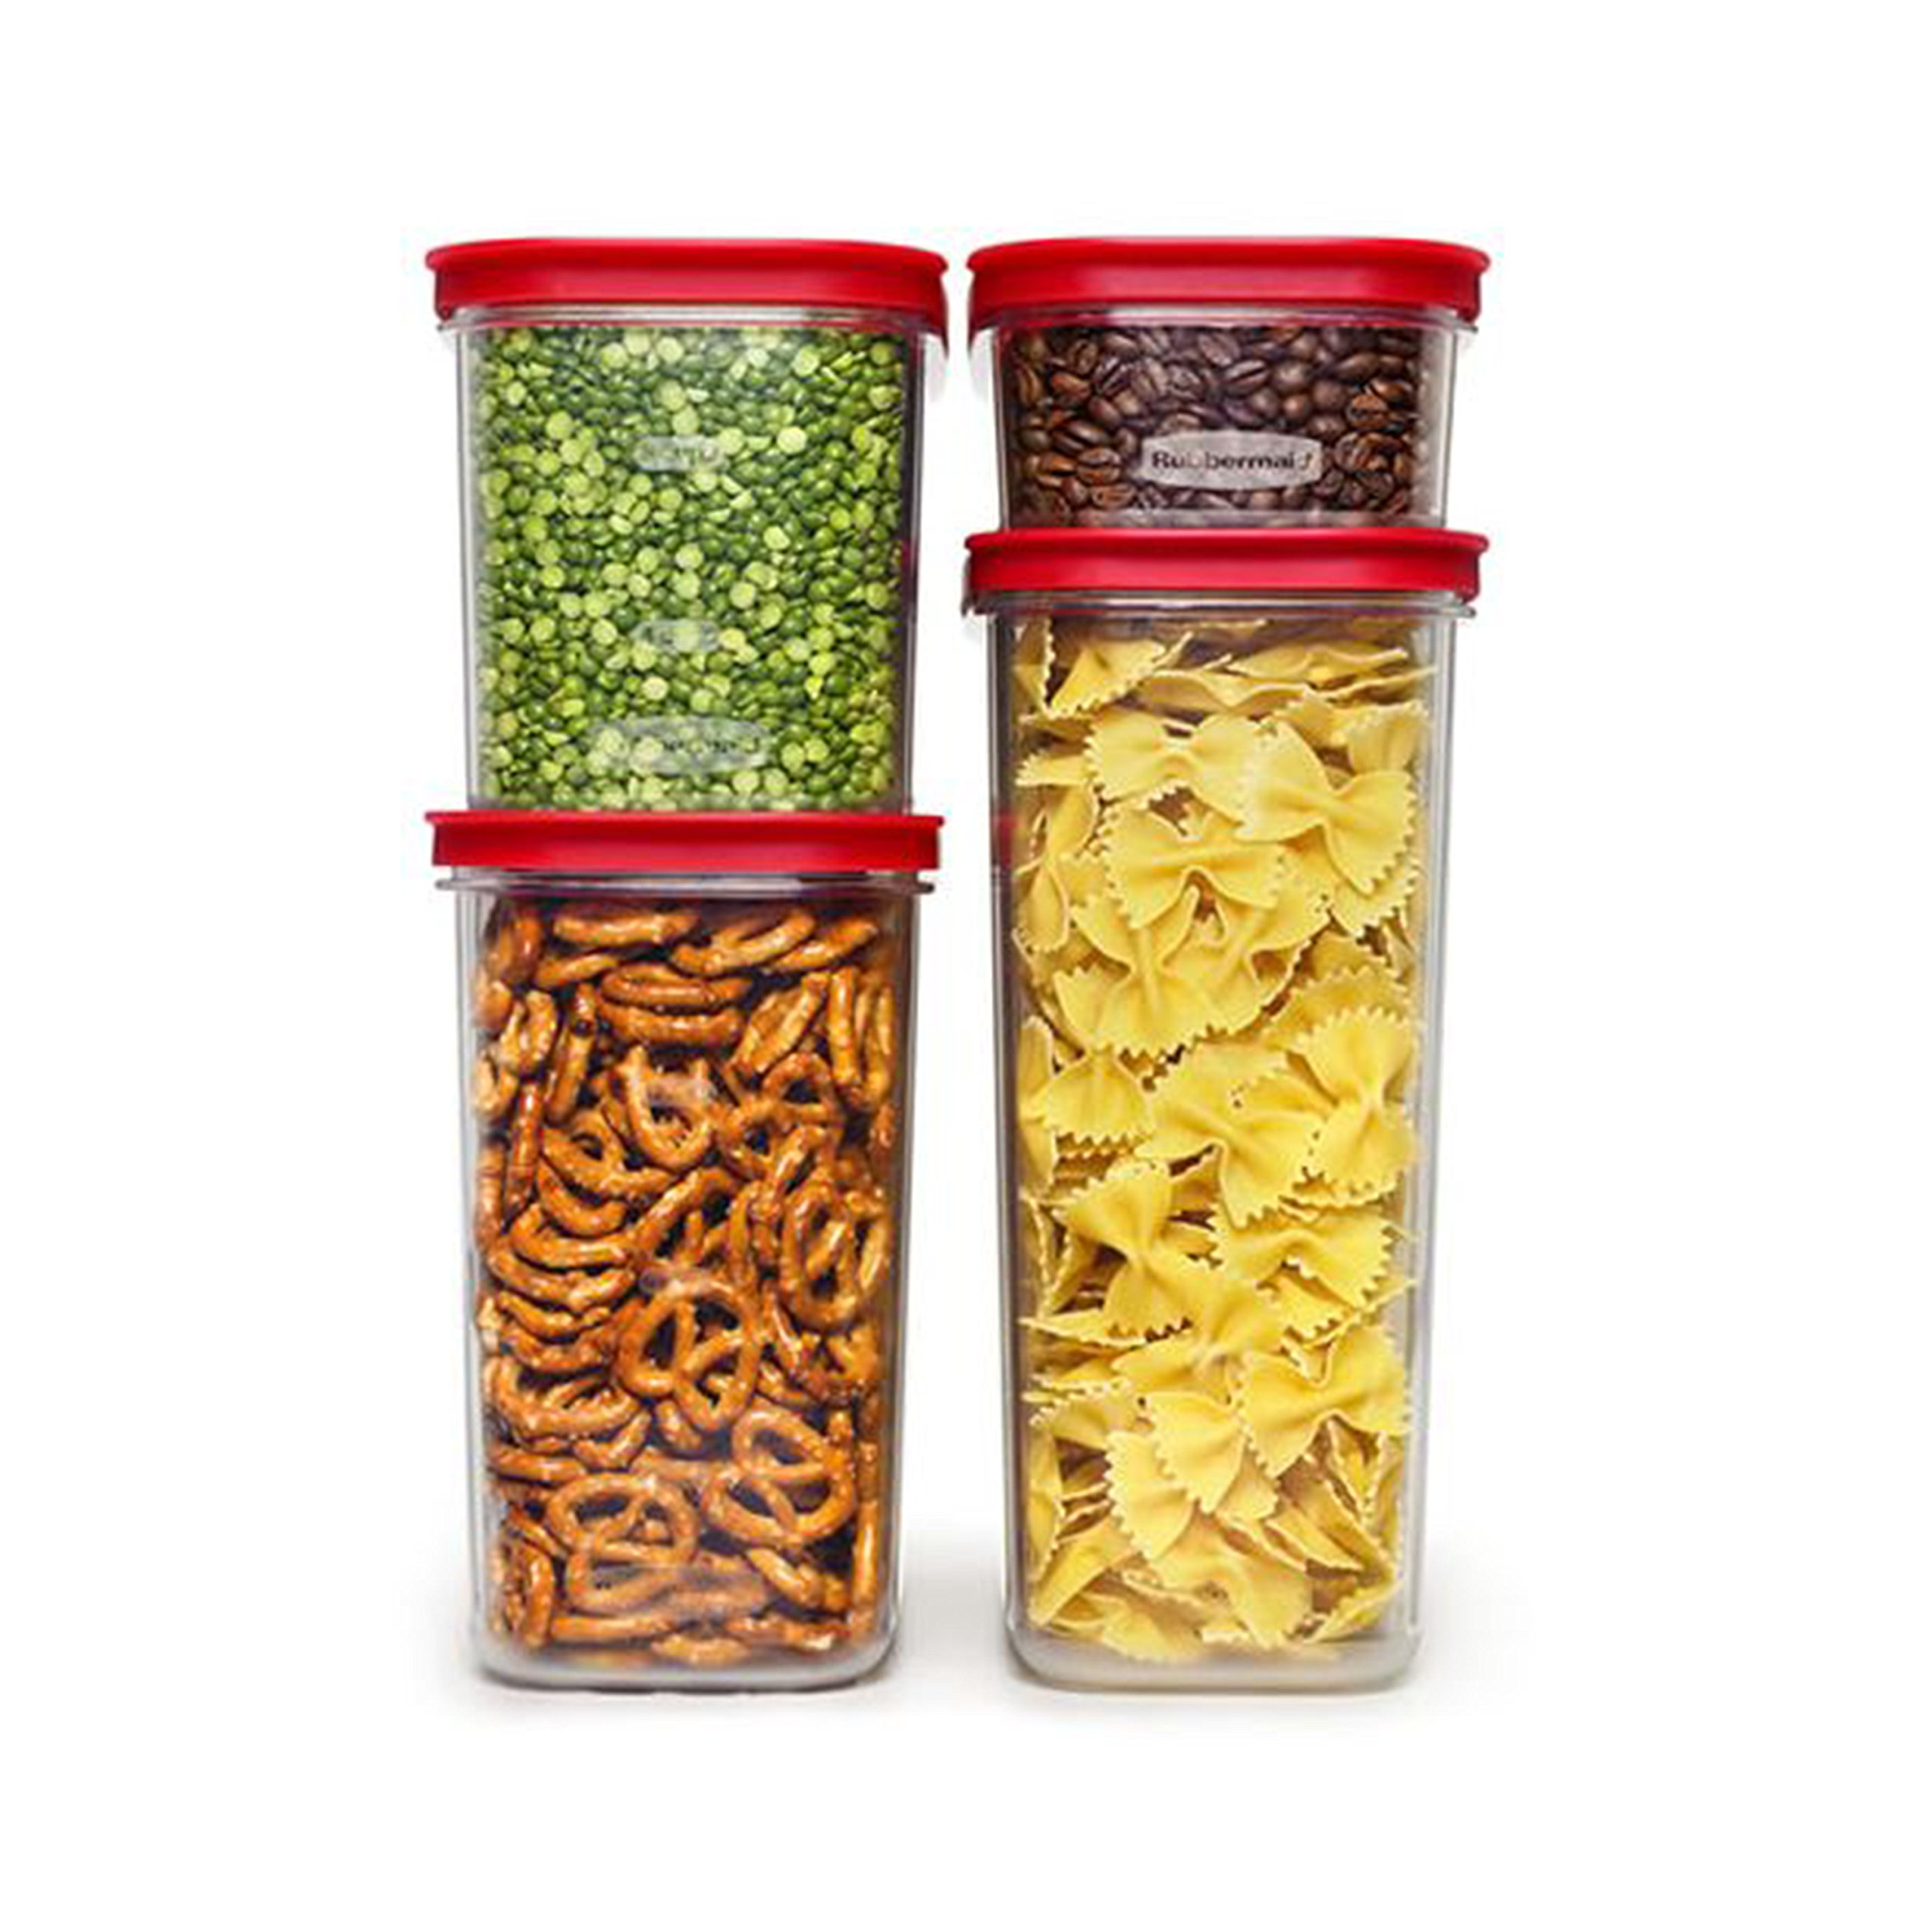 Rubbermaid Premium Modular Food Storage Canisters, Racer Red, Set of 8 1840746